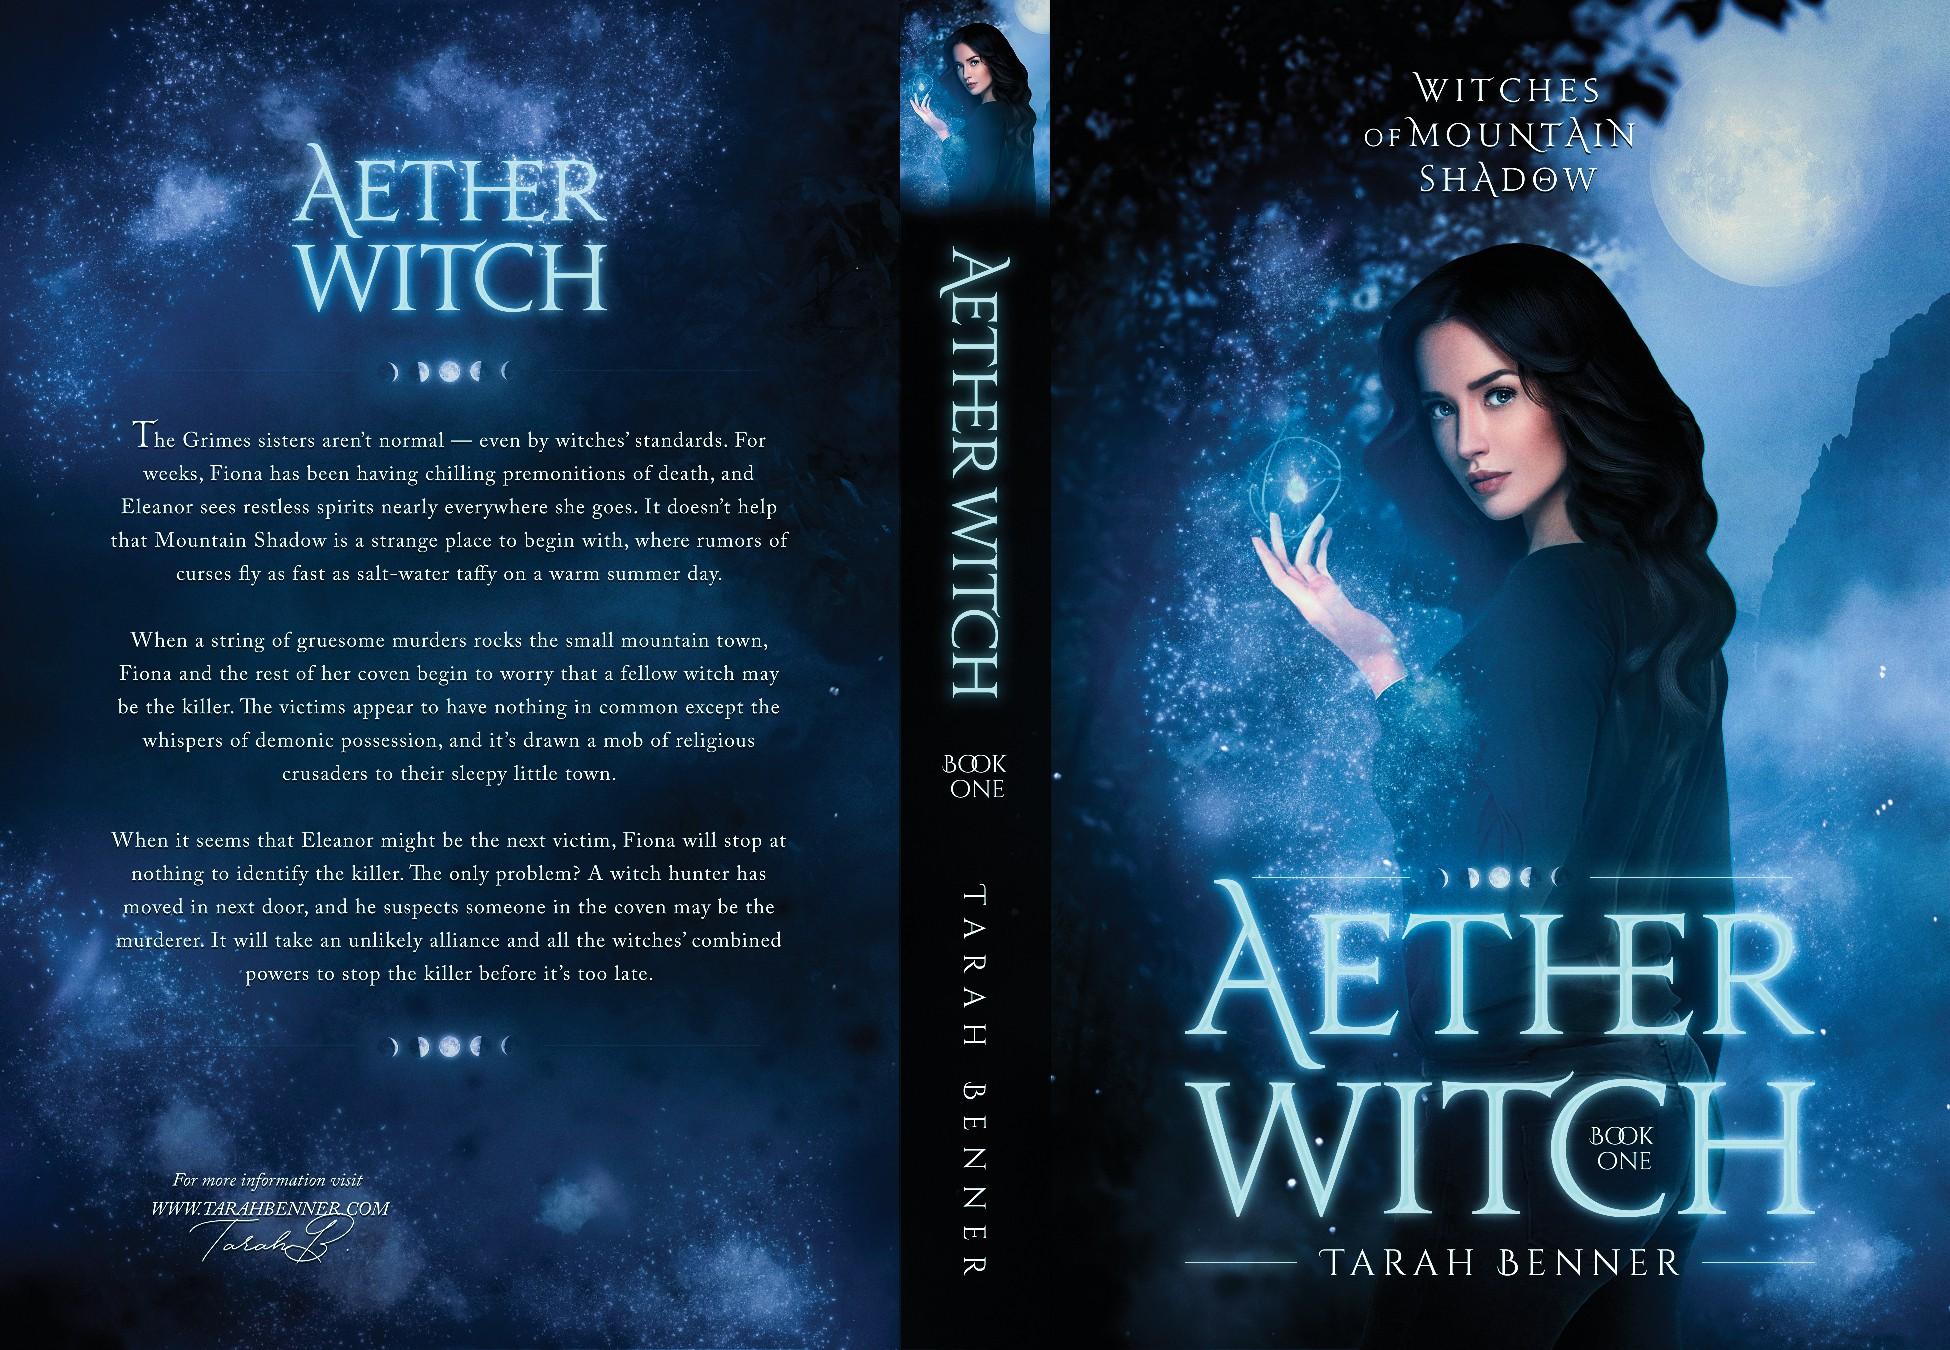 Dark Paranormal/Contemporary Fantasy Book Cover With Female Protagonist